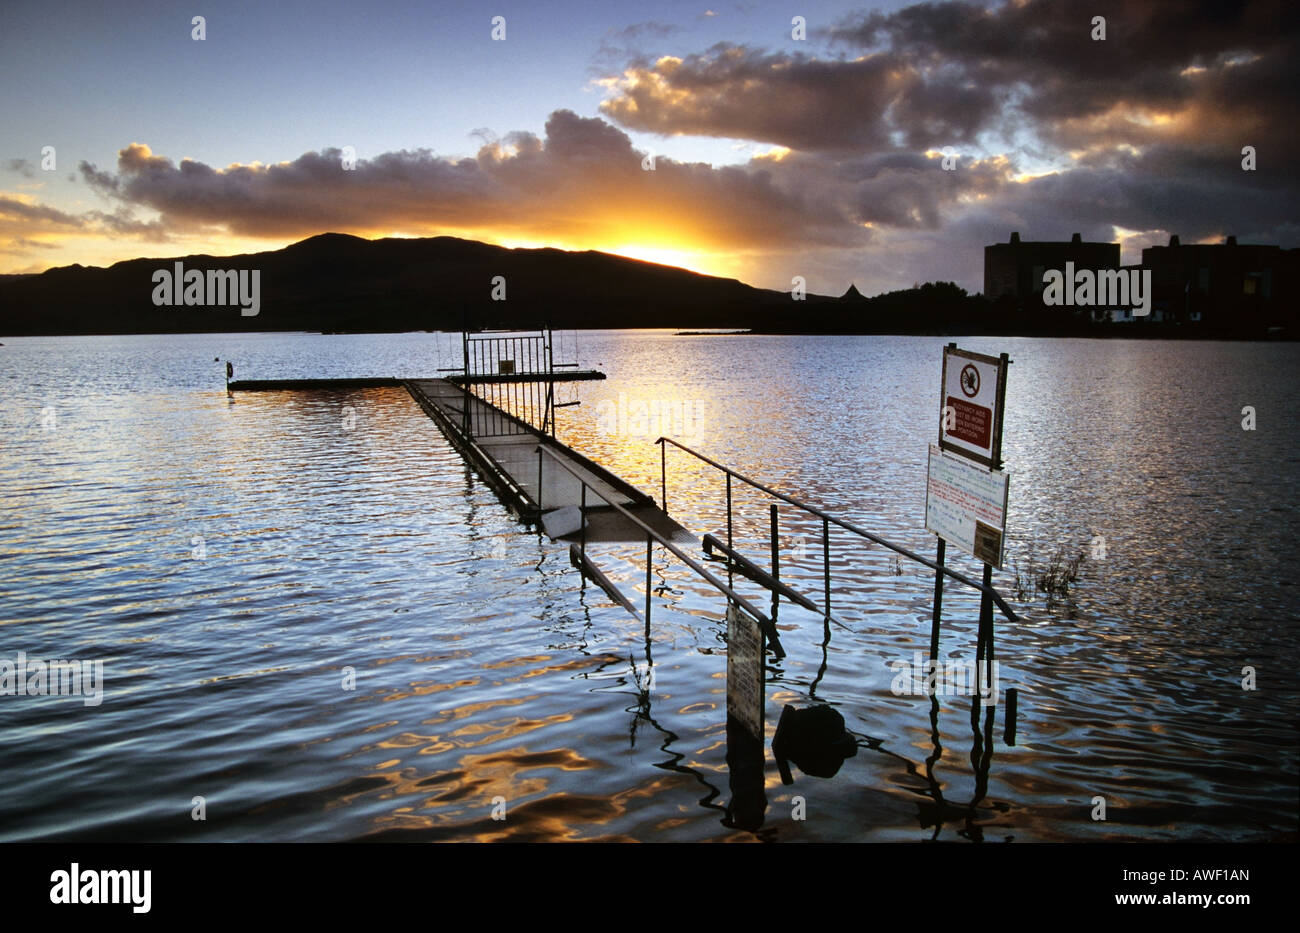 Sunset over Lake Trawsfynydd and the redundant Trawsfynydd Nuclear Power Station, Wales Stock Photo